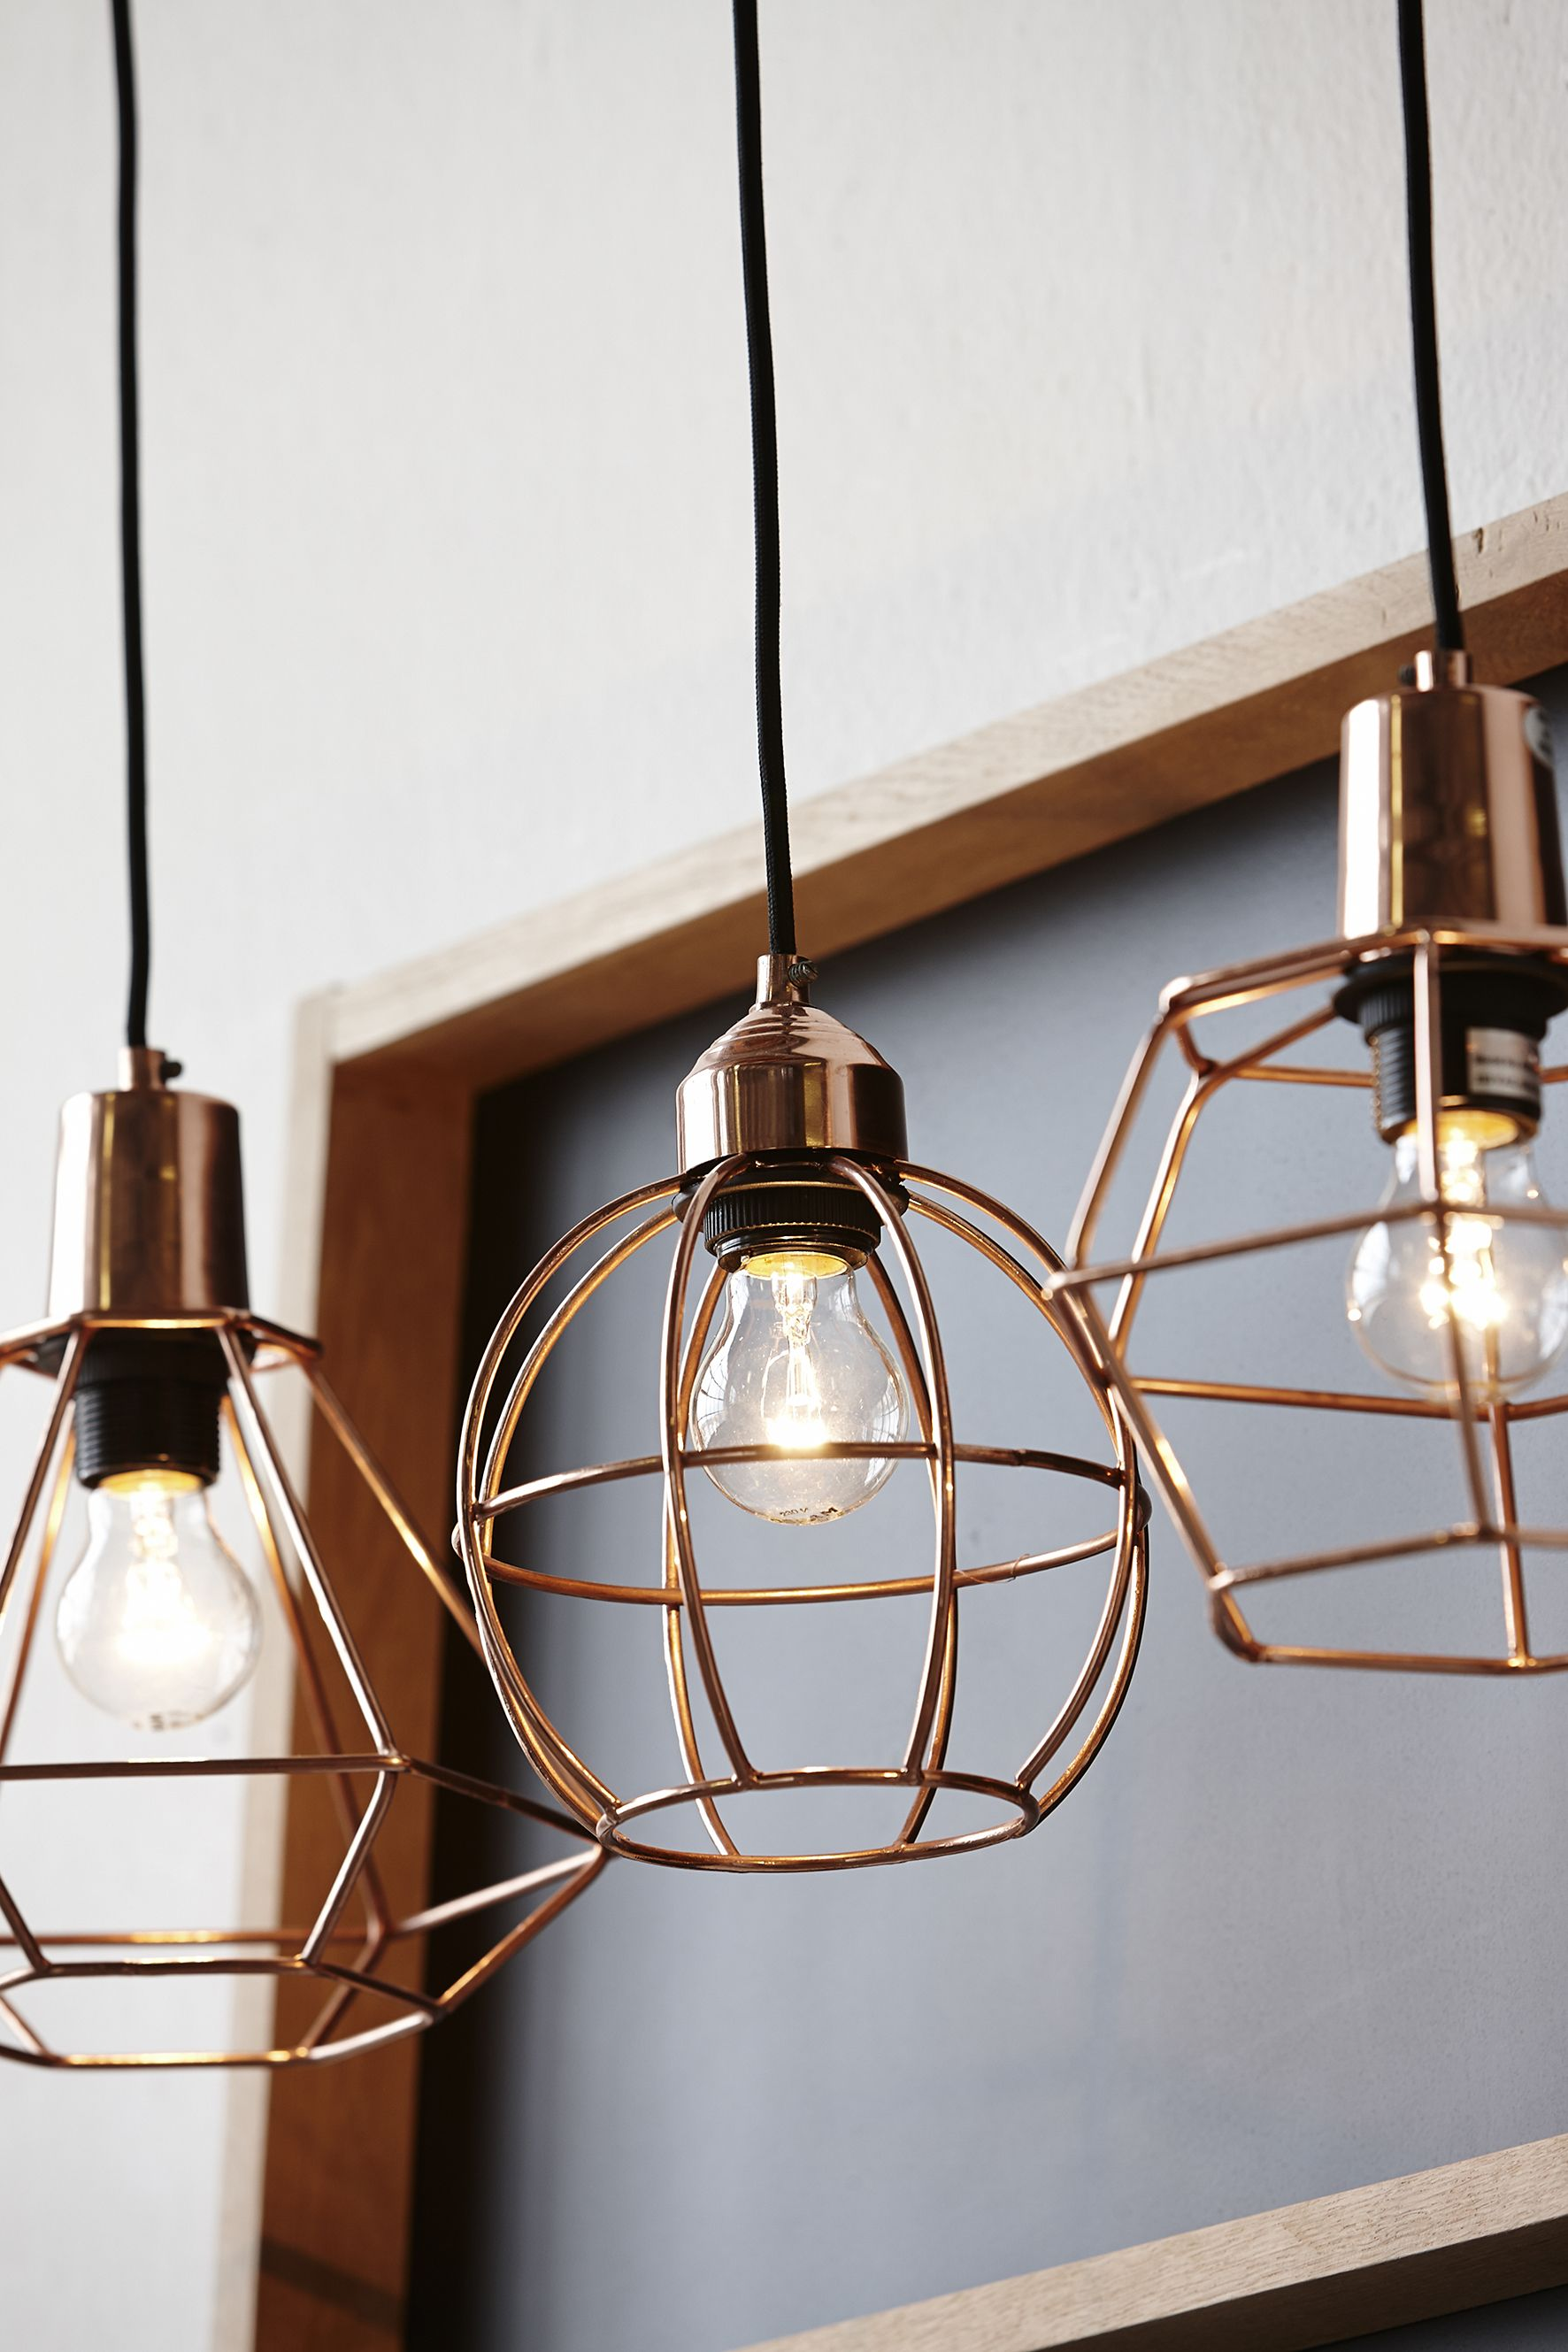 Pendant Lighting 20 Examples Of Copper Pendant Lighting For Your Home